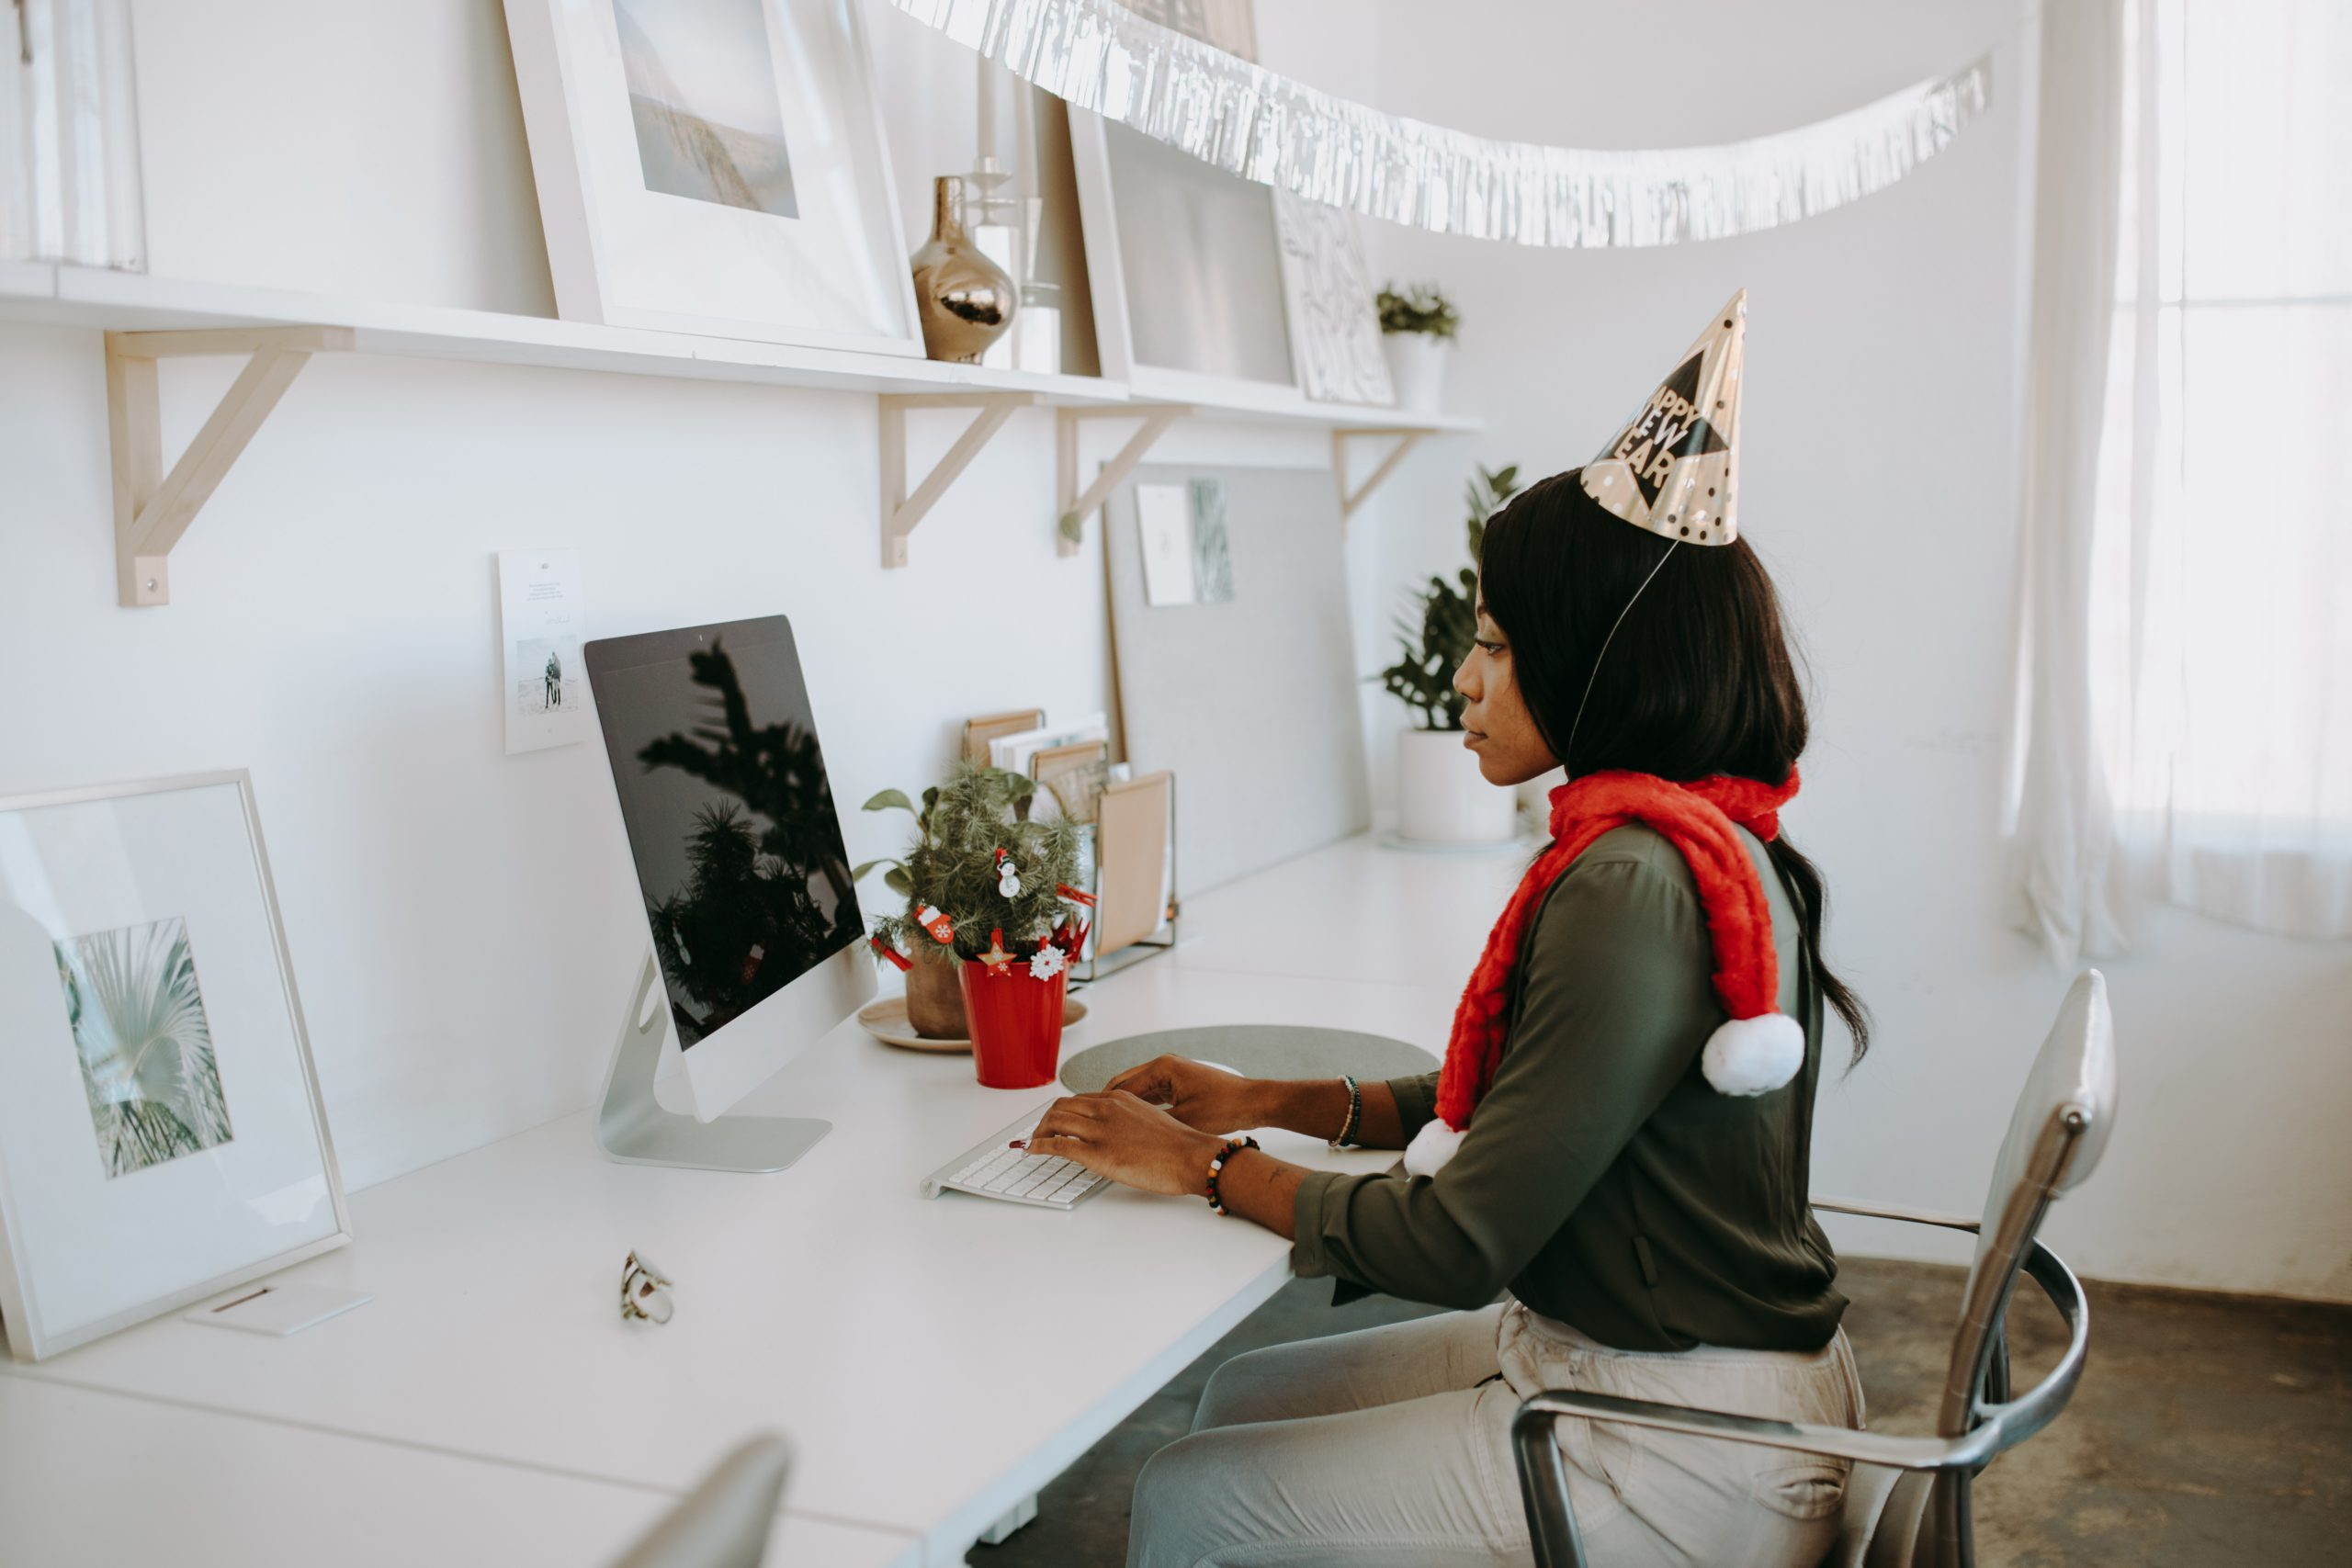 5 Affordable Ways To Show Gratitude In A Remote Work Environment